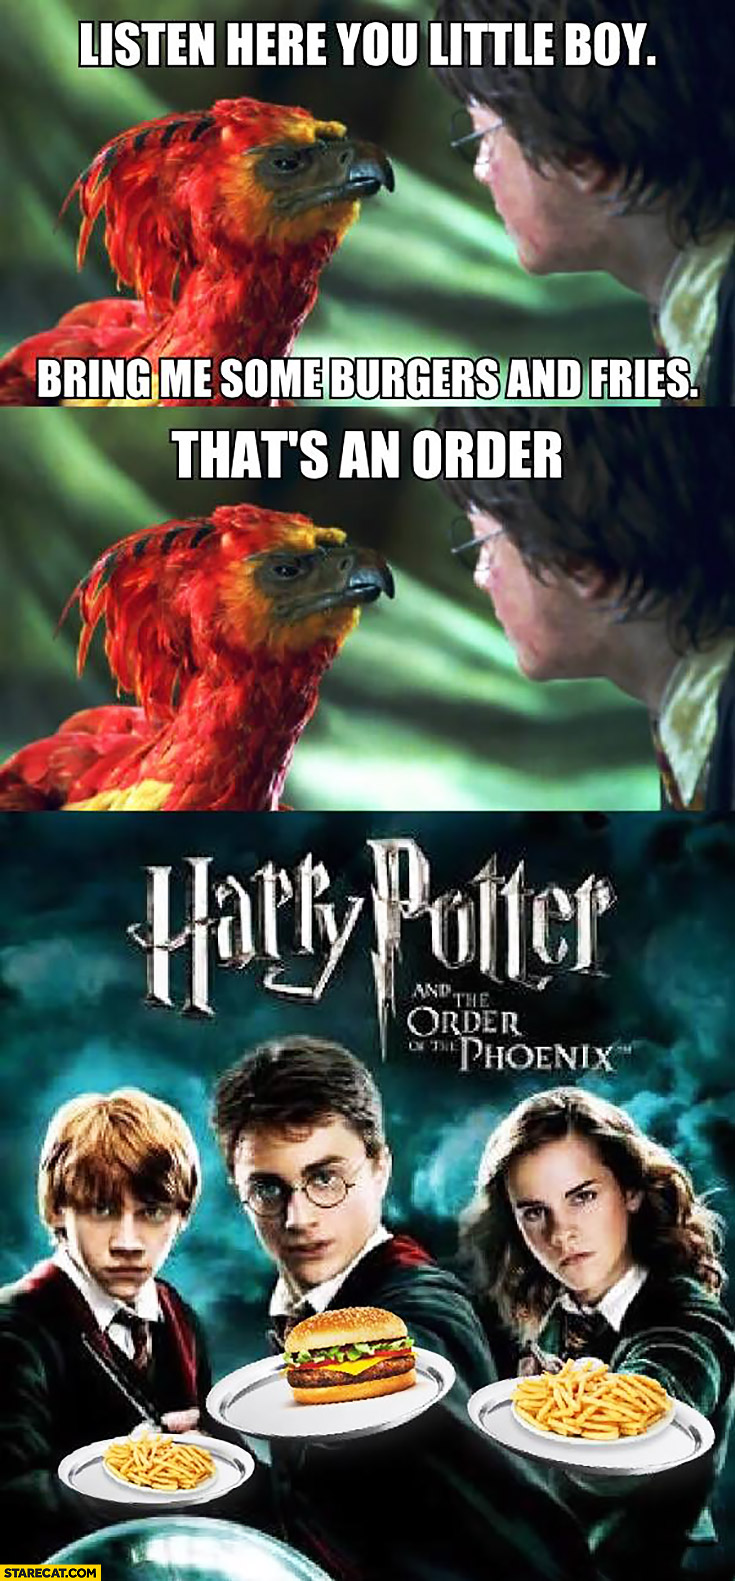 Harry Potter and the order of the Phoenix burgers and fries